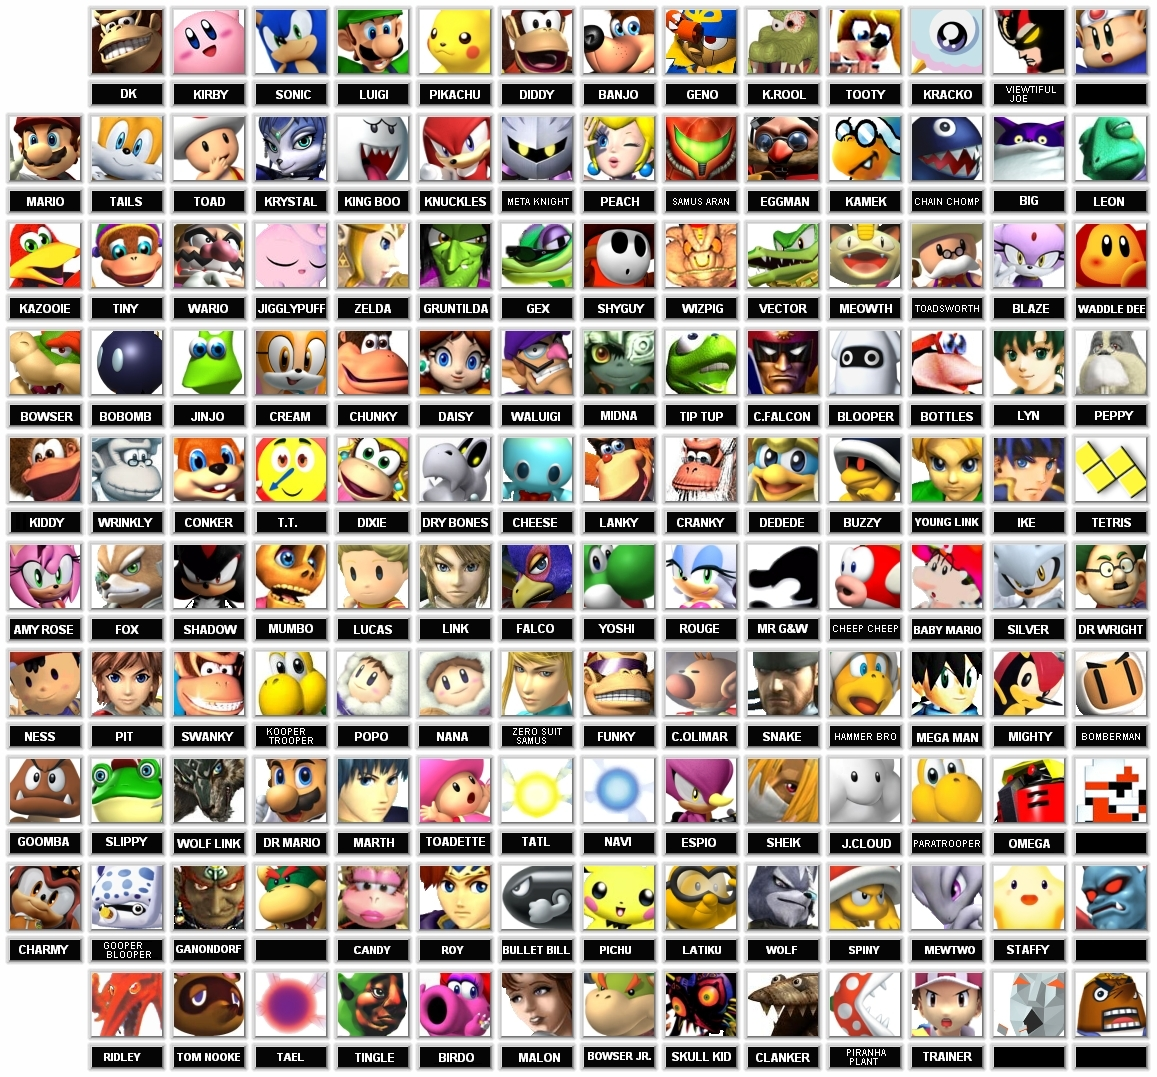 Super Smash Bros. Brawl Fake Super Smash Bros Roster